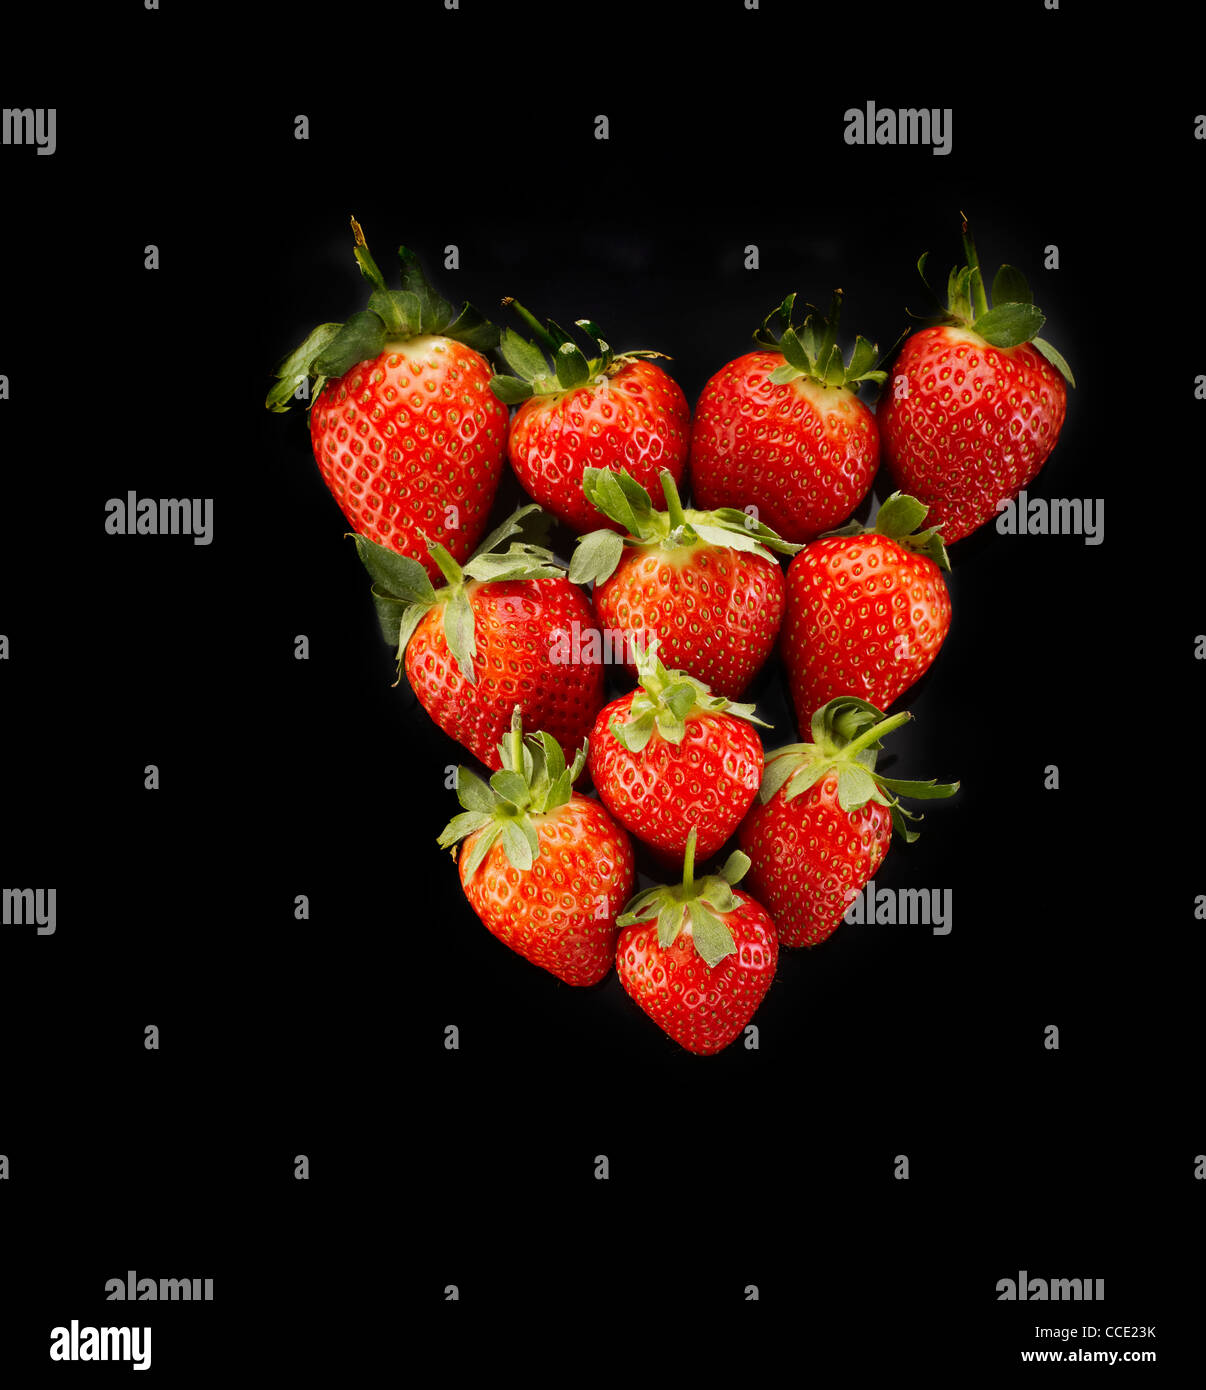 Strawberries in a triangular heart shape - Stock Image